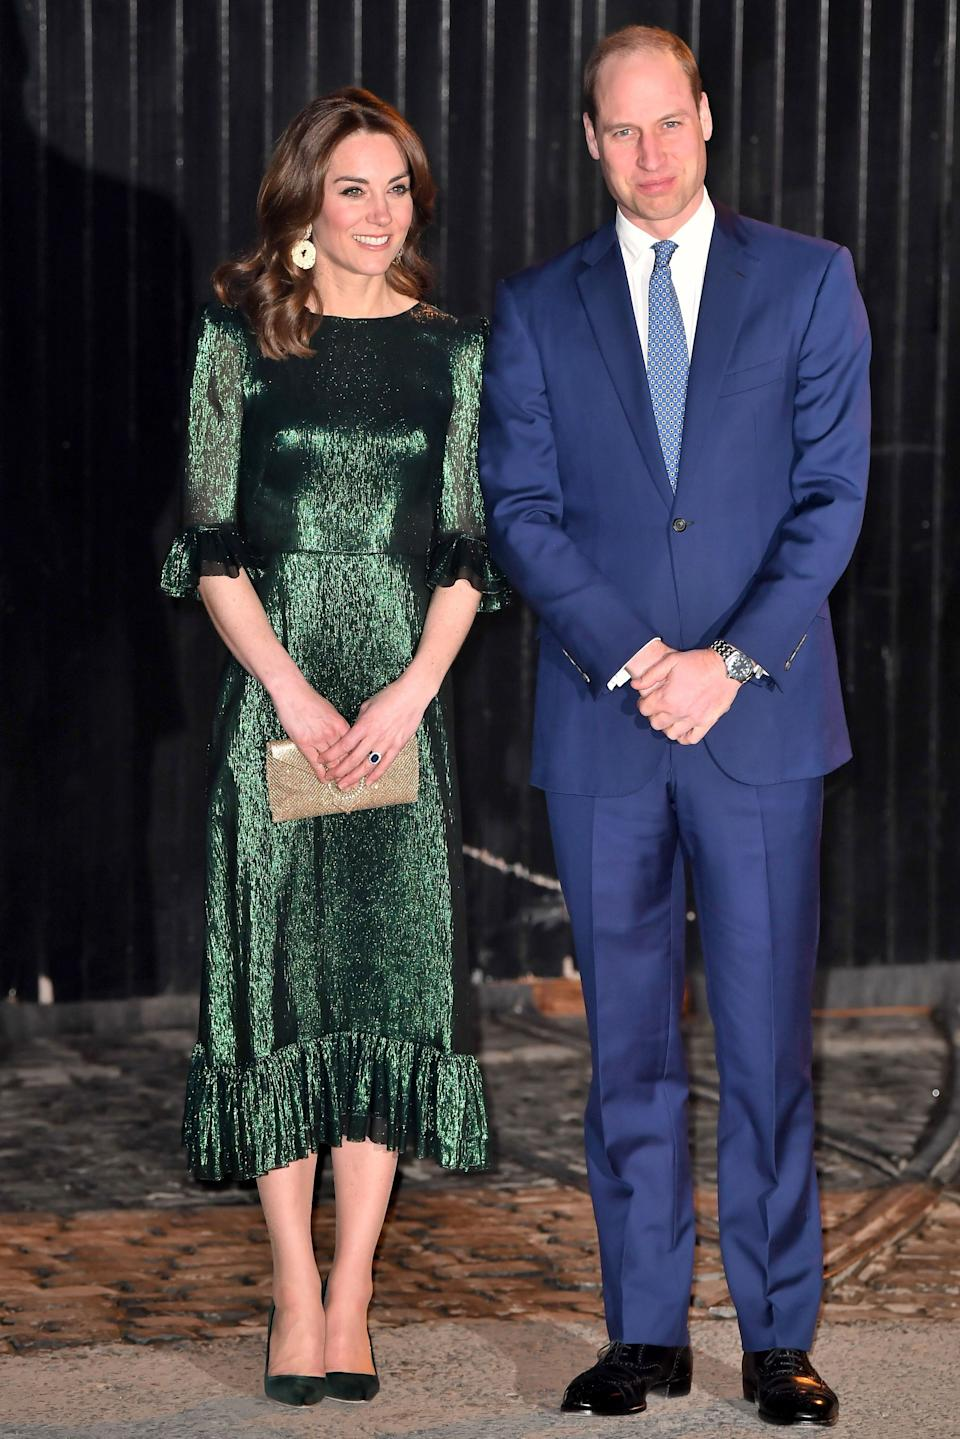 William and Kate attend a special reception hosted by the British ambassador to Ireland at Storehouse's Gravity Bar in Dublin on Tuesday. (Photo: Samir Hussein via Getty Images)